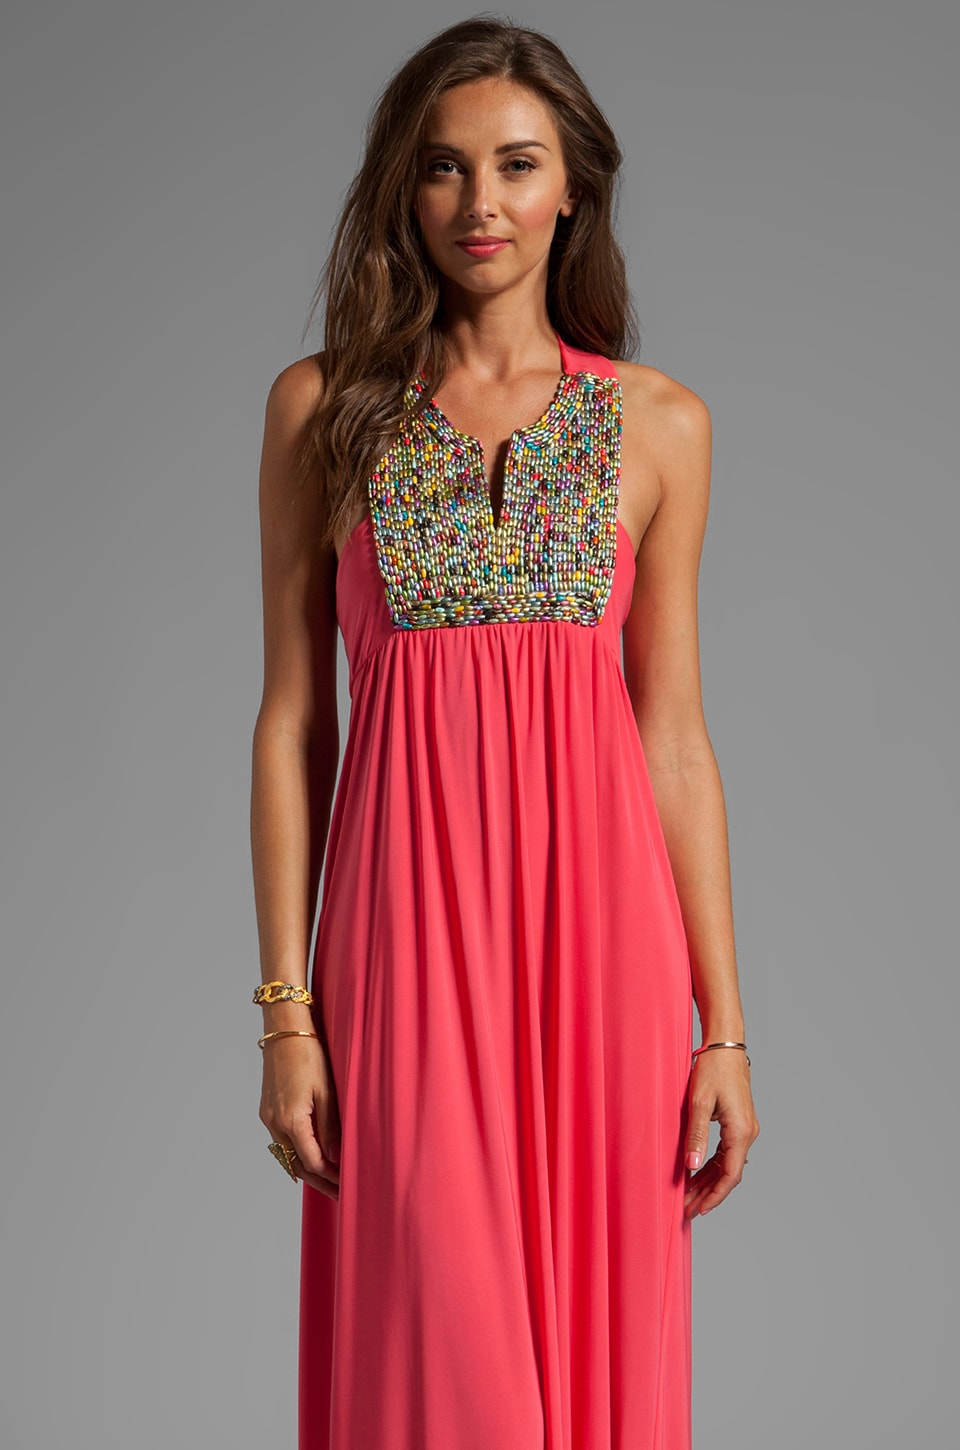 T-Bags LosAngeles Embellished Tribal Maxi Dress in Coral